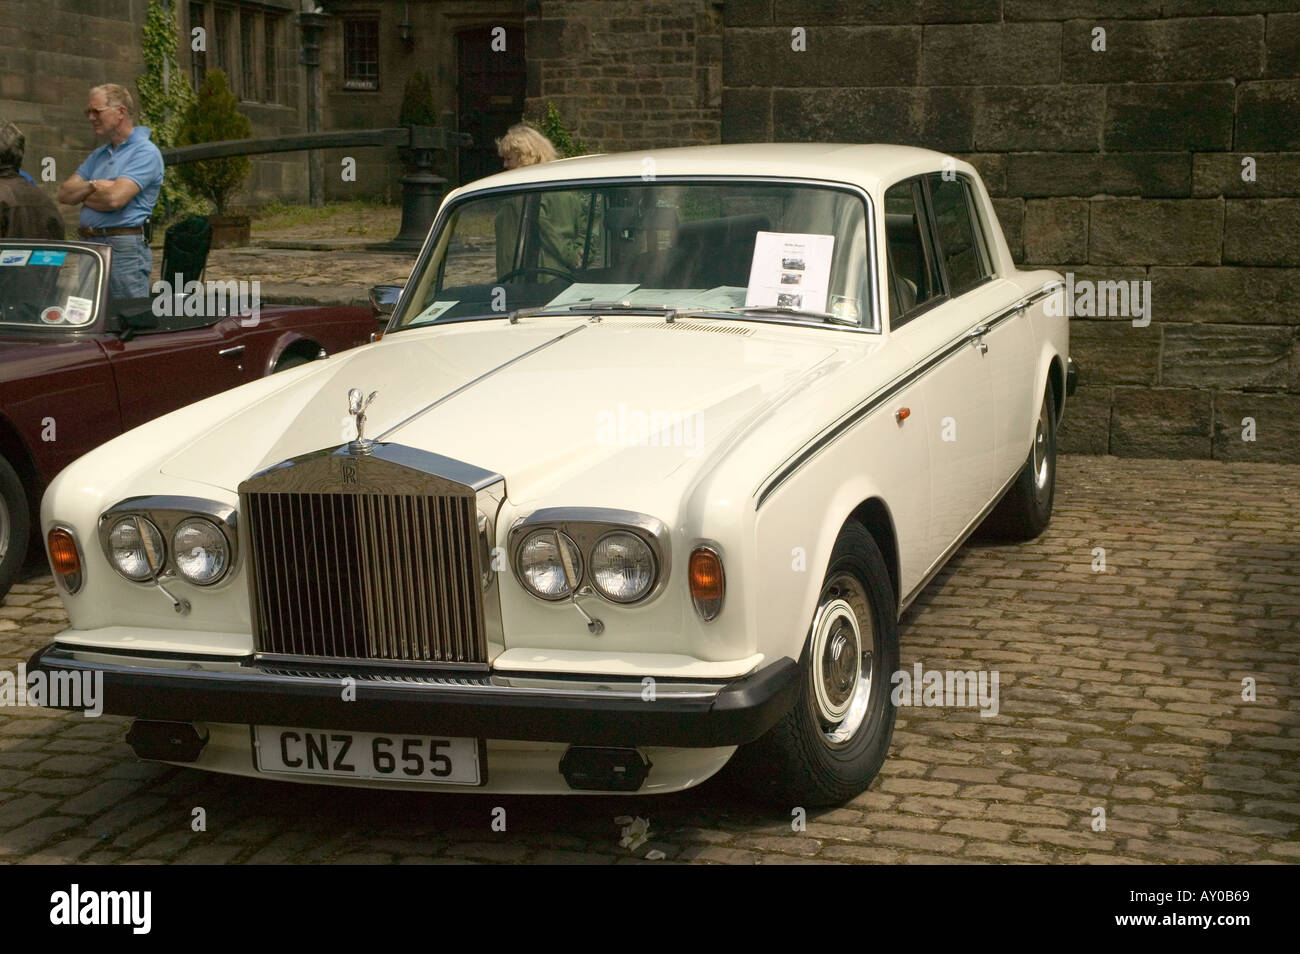 Classic White Rolls Royce Car Stock Photo Alamy